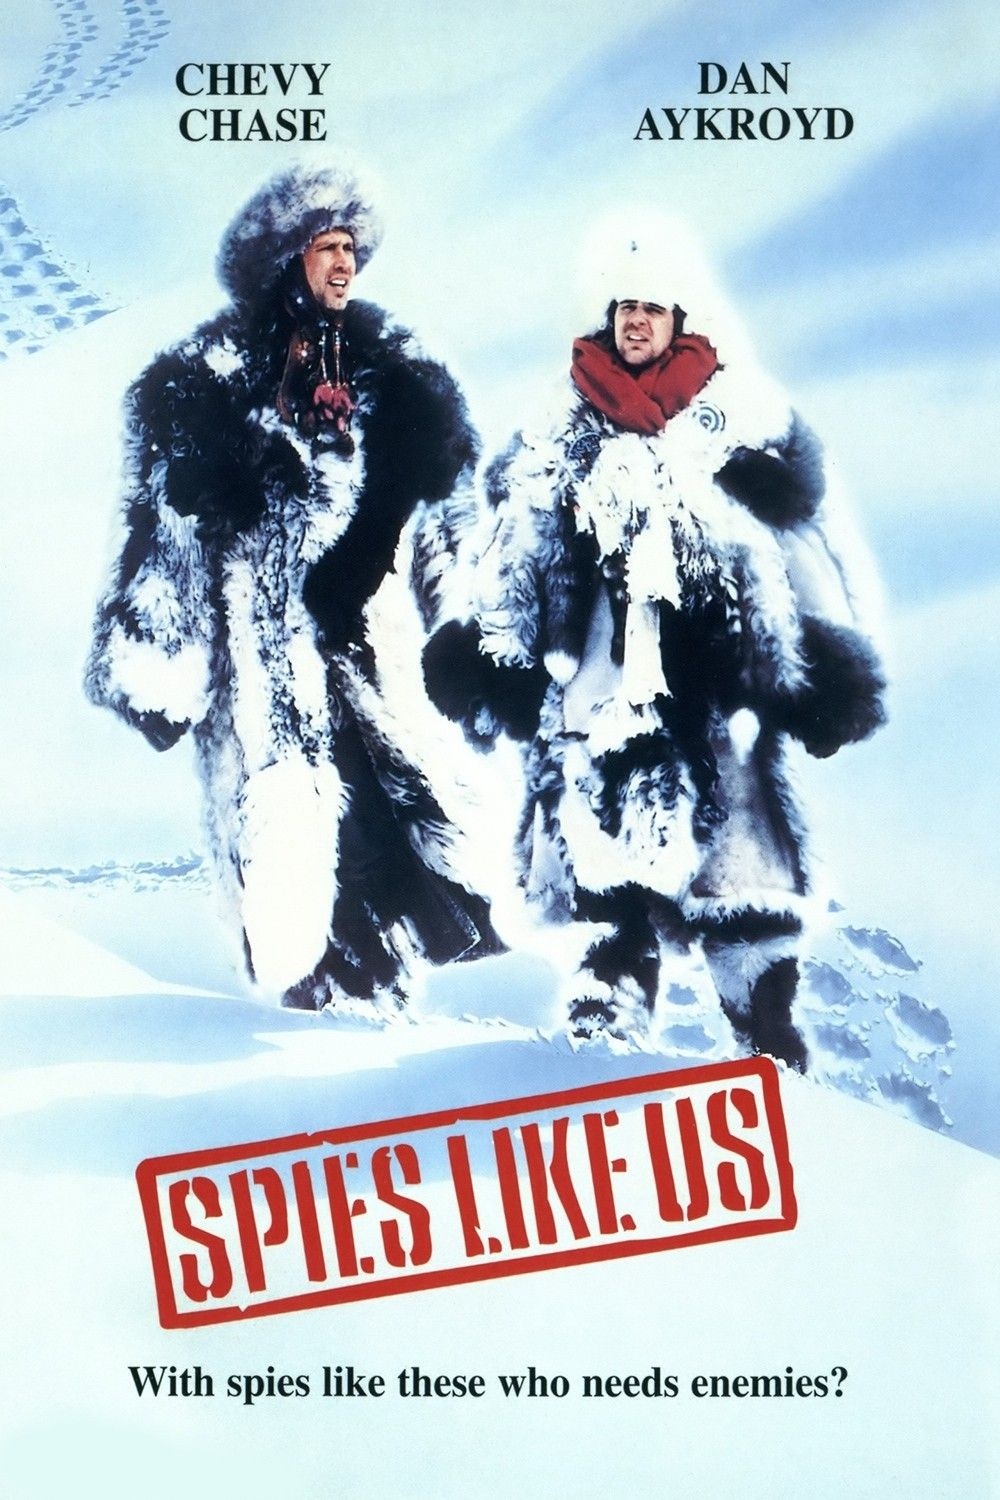 Spies Like Us Two Totally Incompetent Applicants Emmett Fitzhume And Austin Millbarge Are Chosen From A Cia Re This Is Us Movie Movies Online Comedy Movies